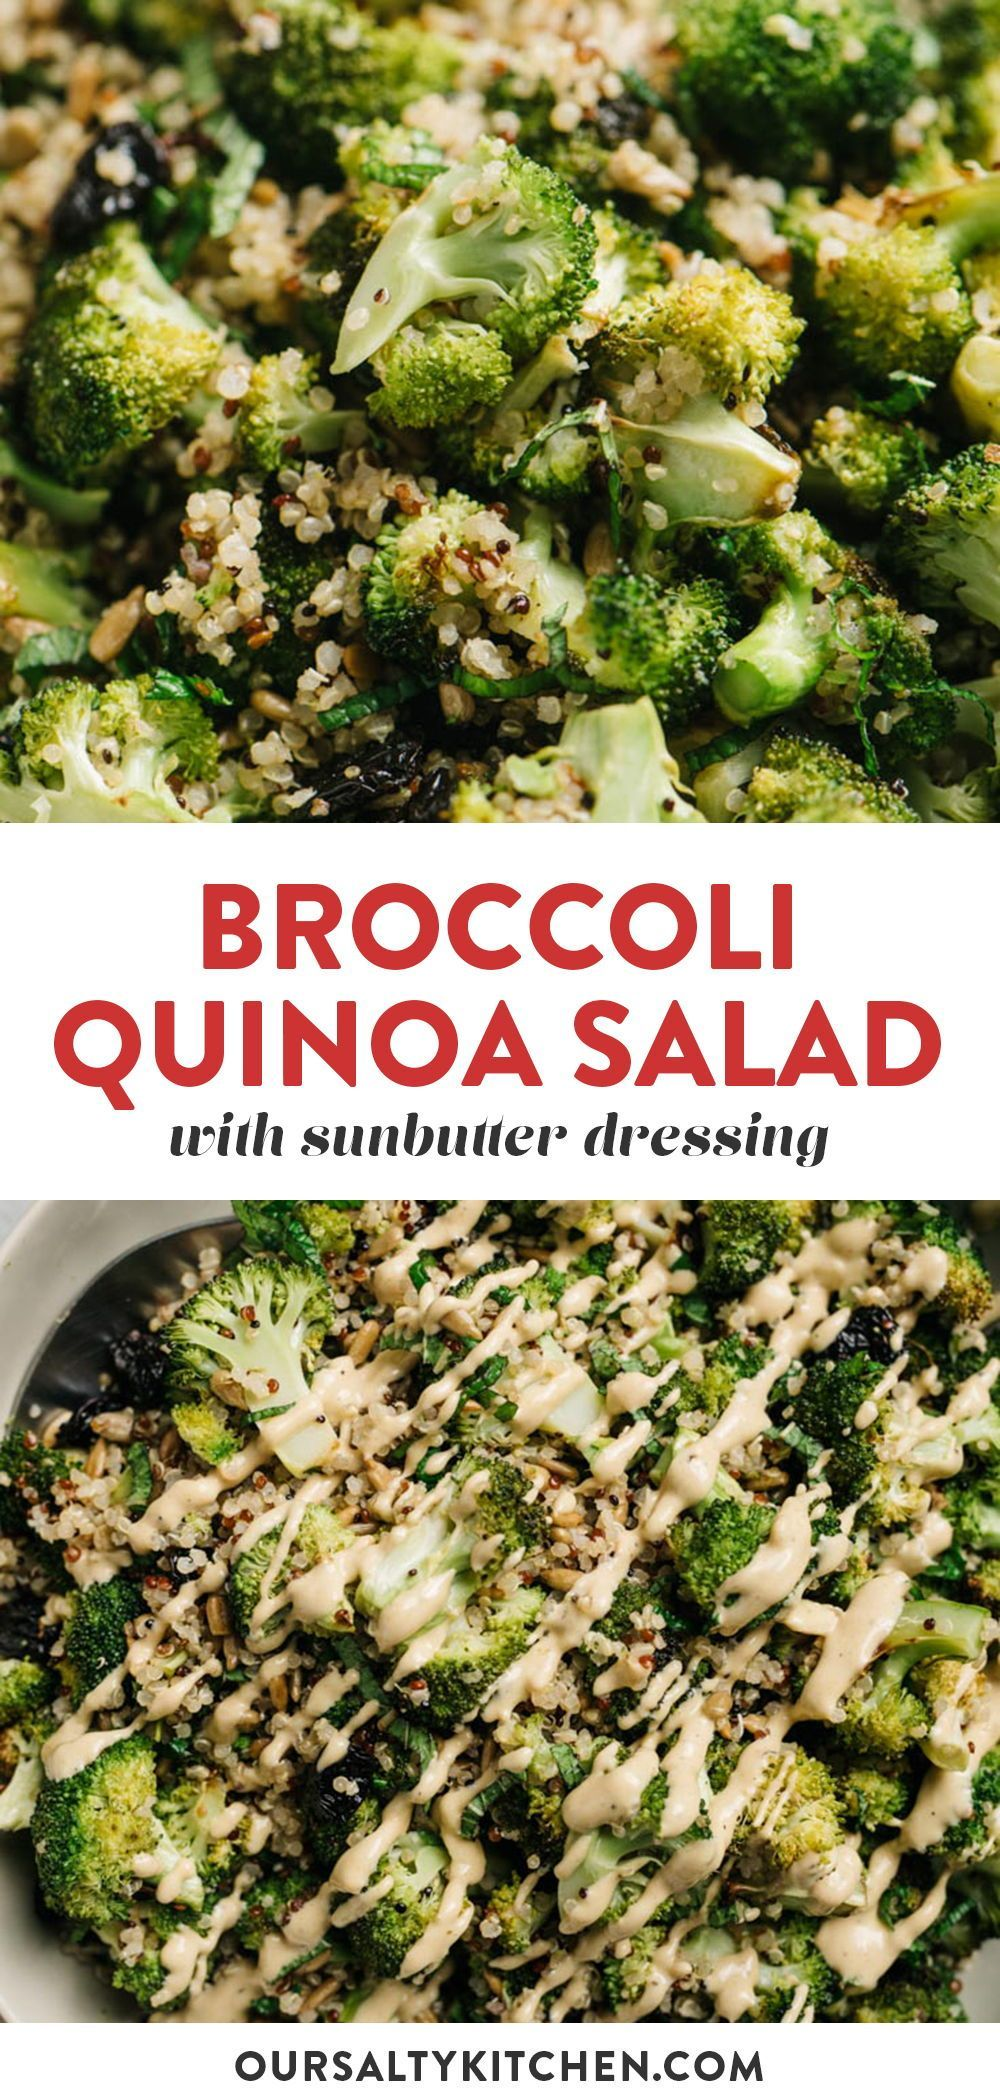 Roasted Broccoli Quinoa Salad With Sunbutter Dressing Recipe In 2020 Whole Food Recipes Healthy Freezer Meals Dinner Meal Prep